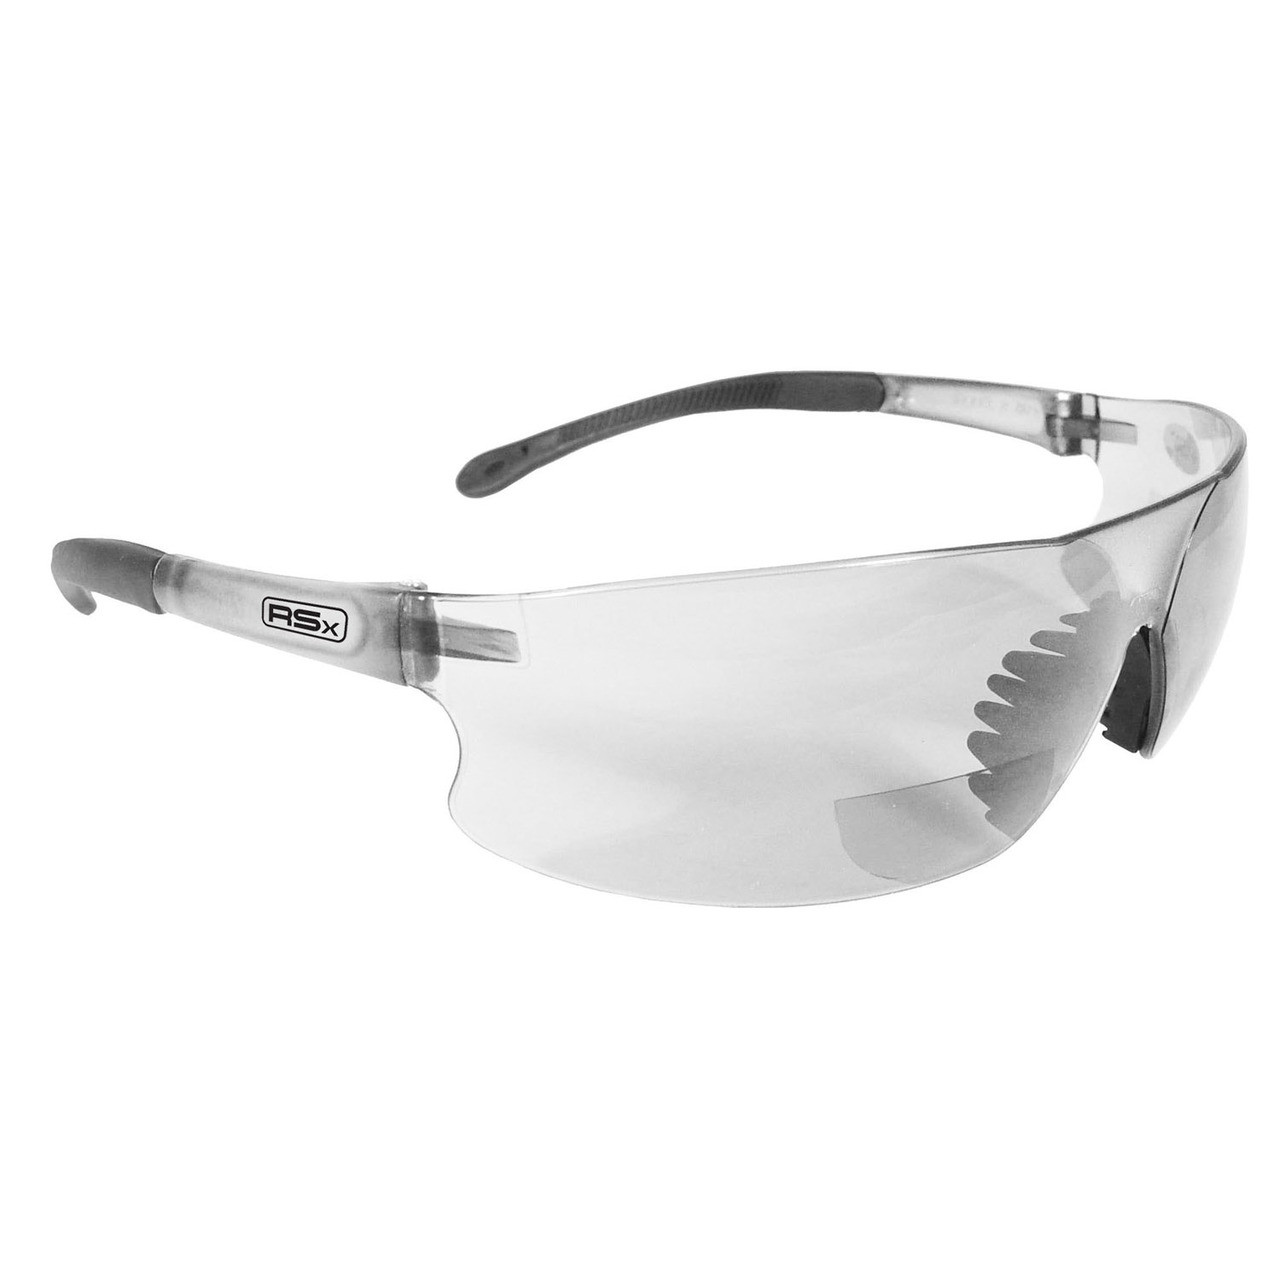 7fb9811c618 Radians® RAD-SEQUEL RSx Bi-Focal Safety Glasses - G   S Safety Products